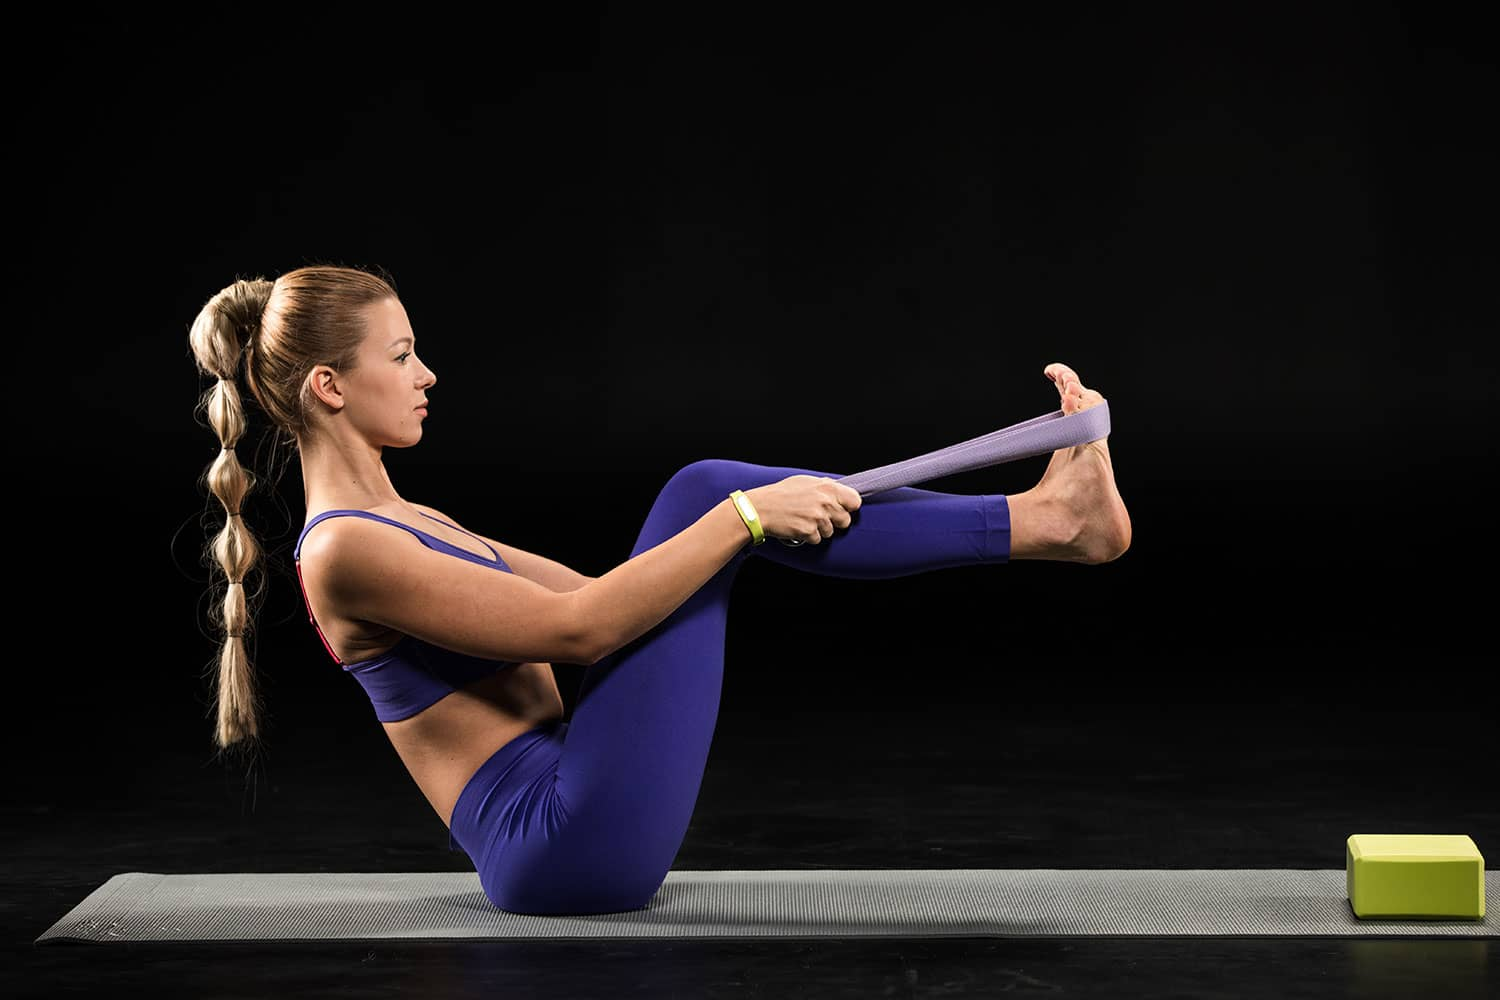 Prop Your Yoga 10 Poses to Practice With a Yoga Strap